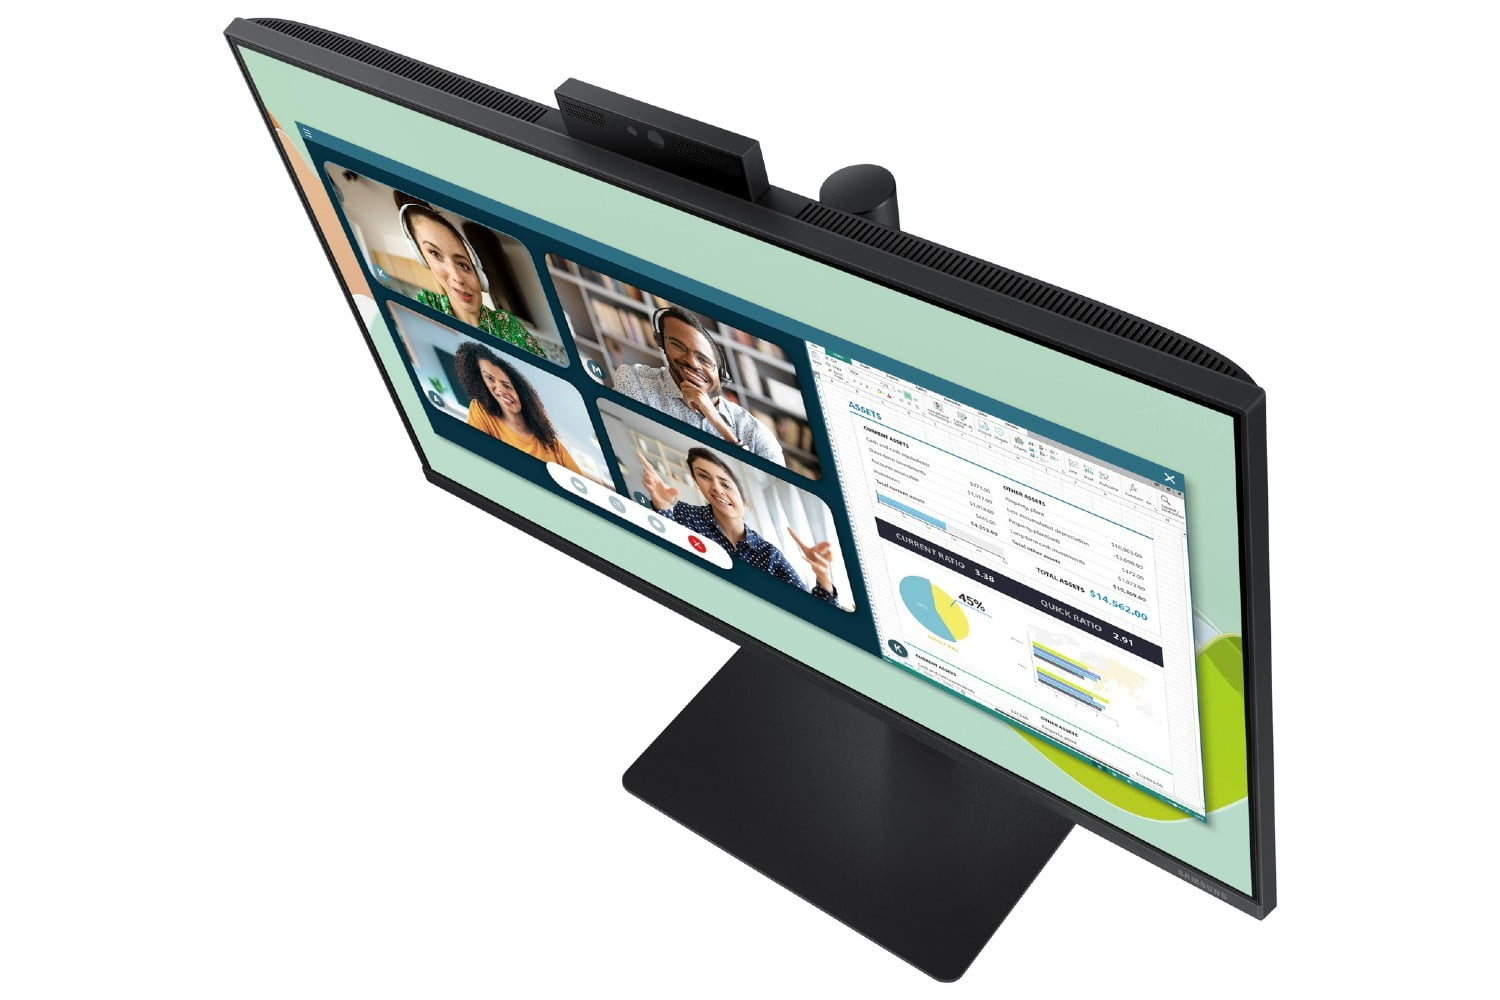 A top view of the Samsung Webcam Monitor.